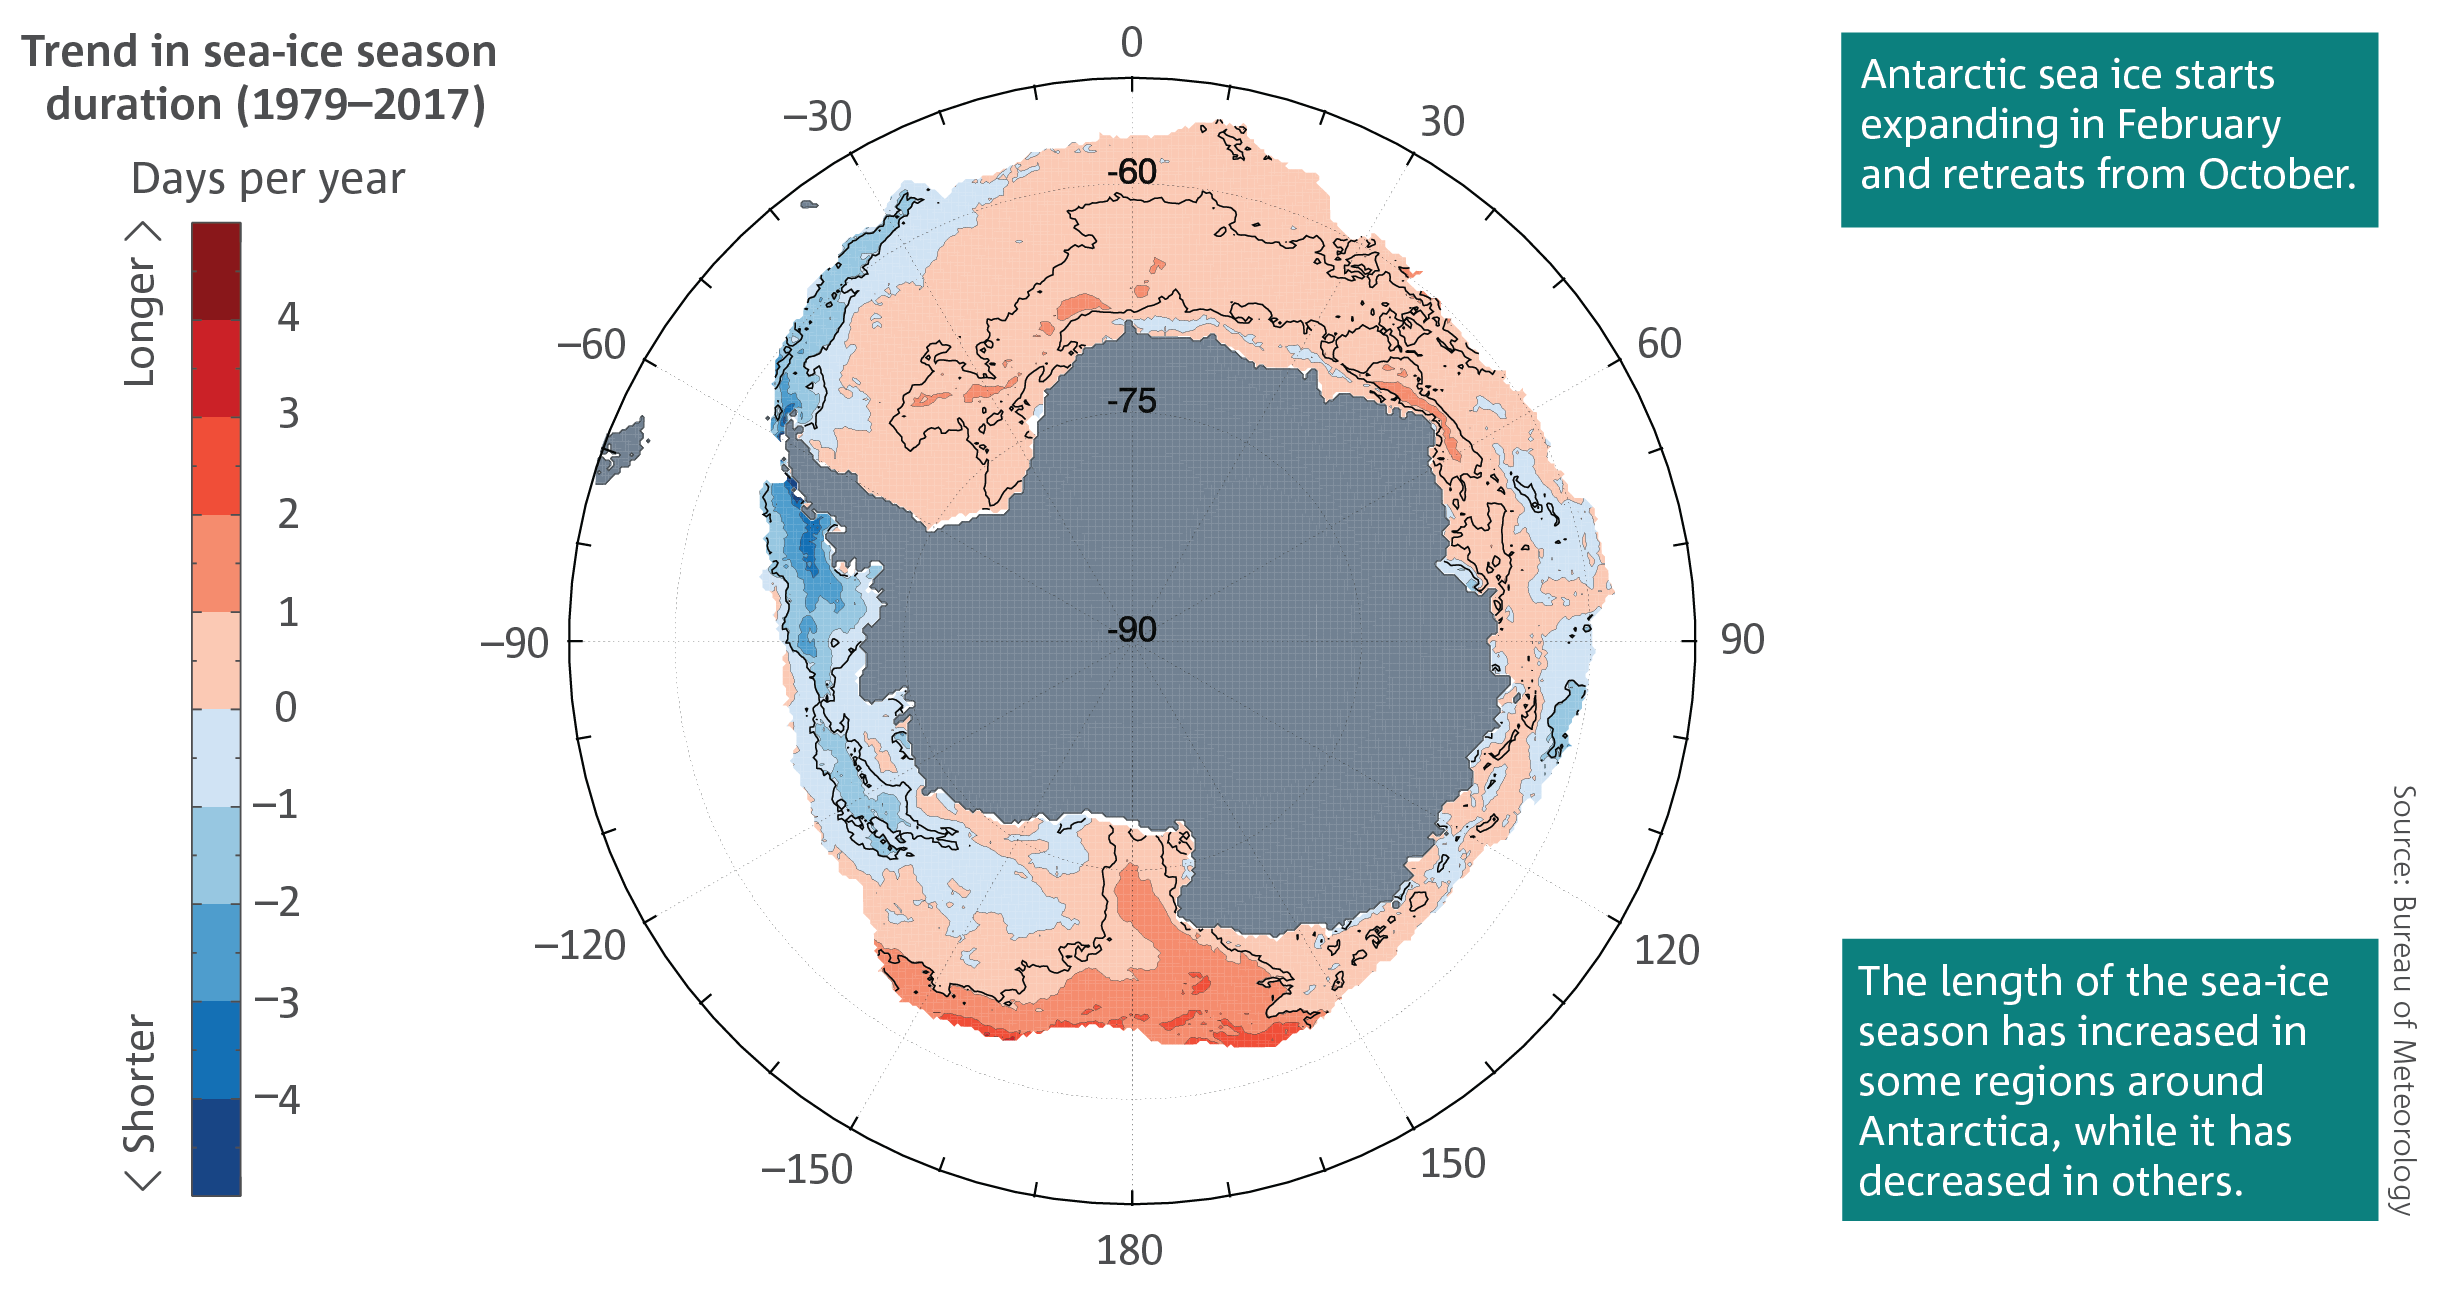 A map showing trends in sea-ice season.